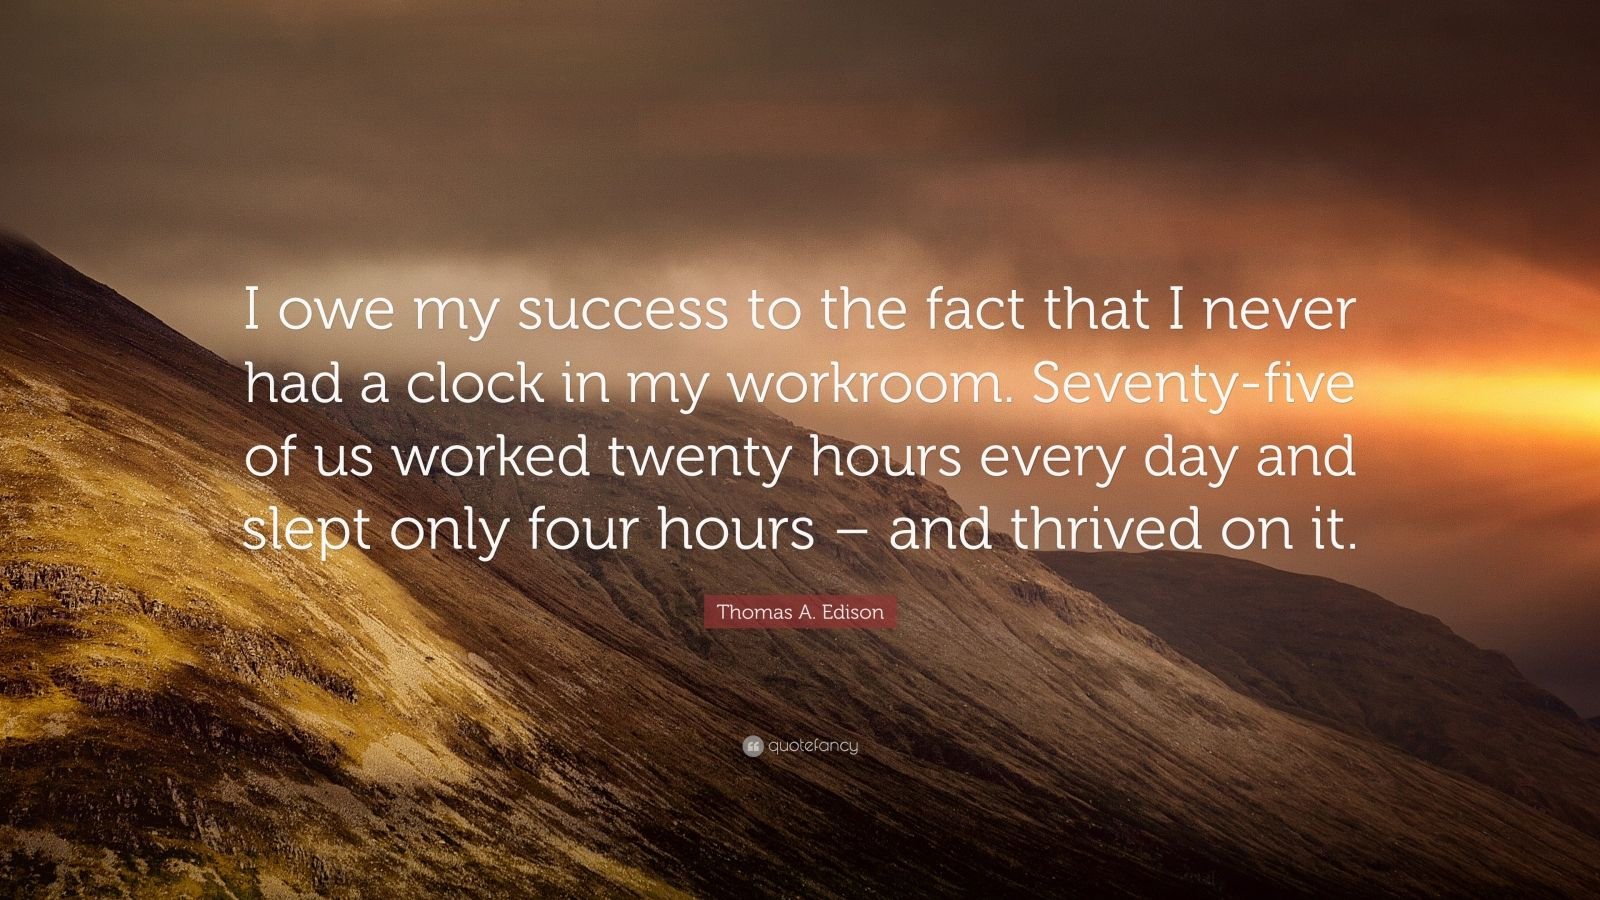 """Thomas A. Edison Quote: """"I owe my success to the fact that I never had a clock in my workroom. Seventy-five of us worked twenty hours every day and slept only four hours – and thrived on it."""""""